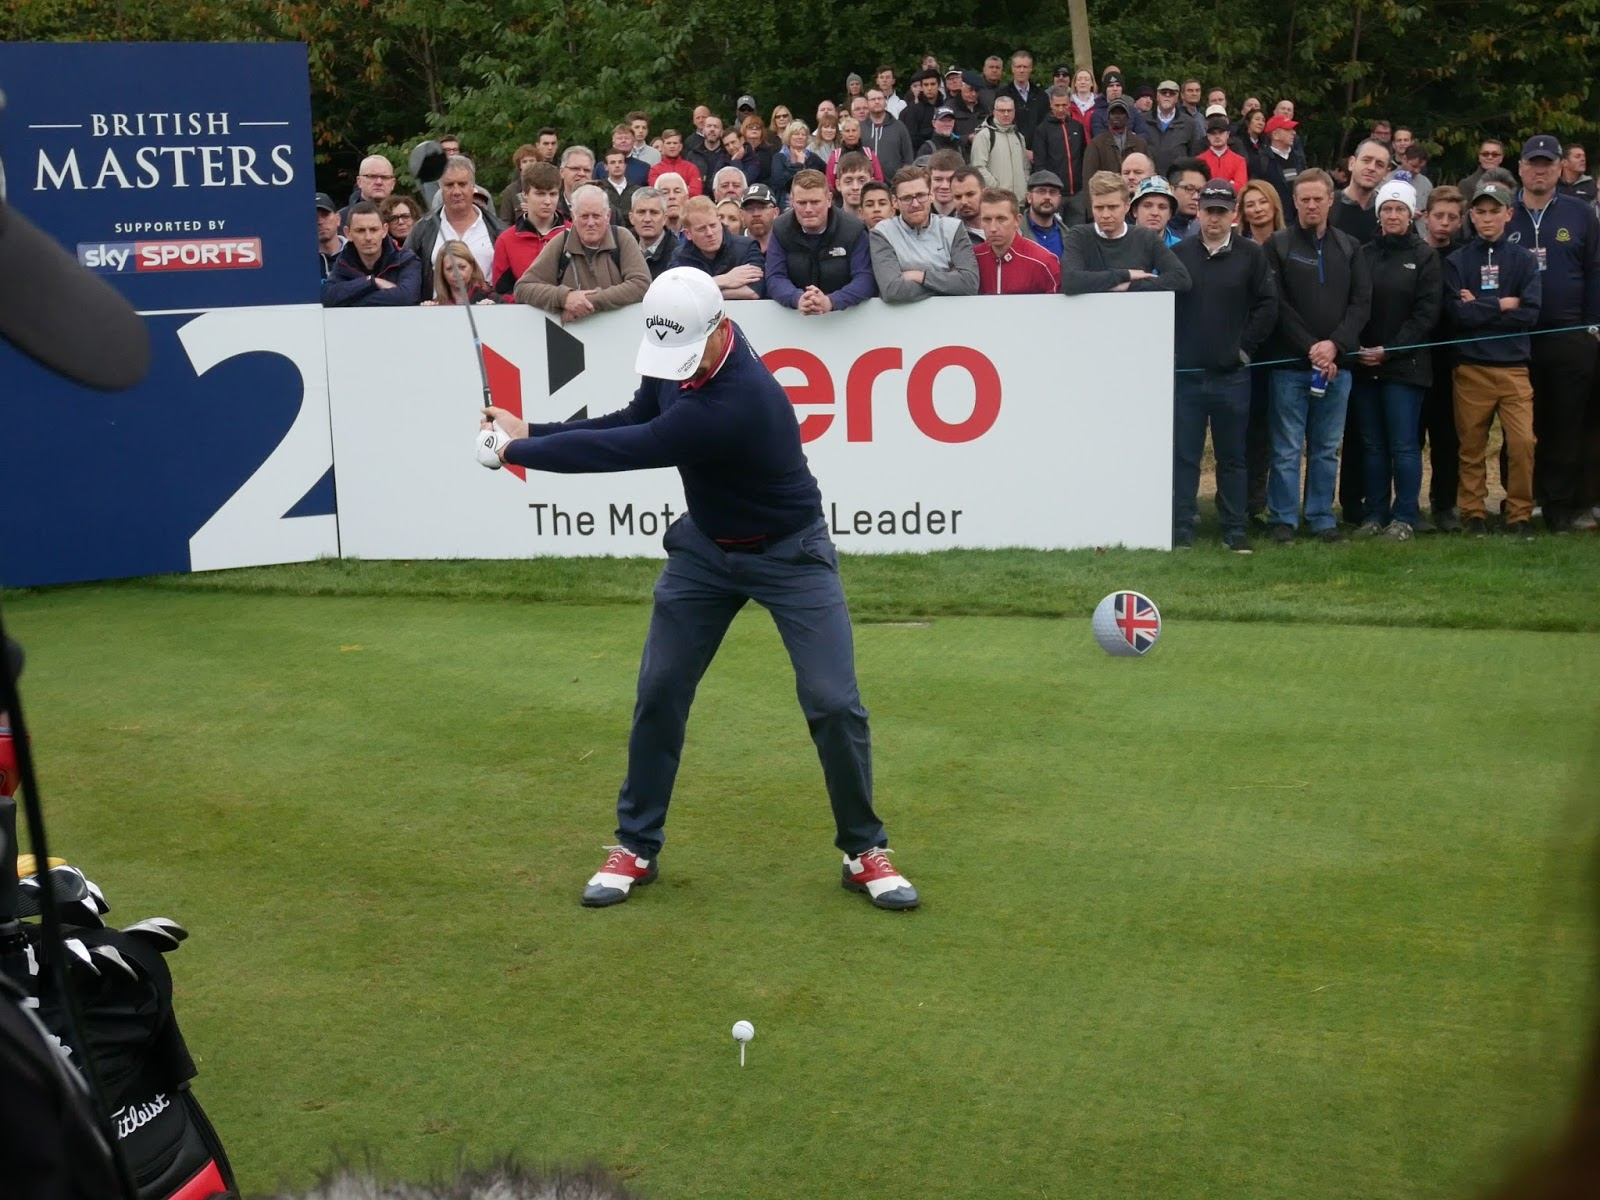 Alex Noren takes aim at the British Masters 2016